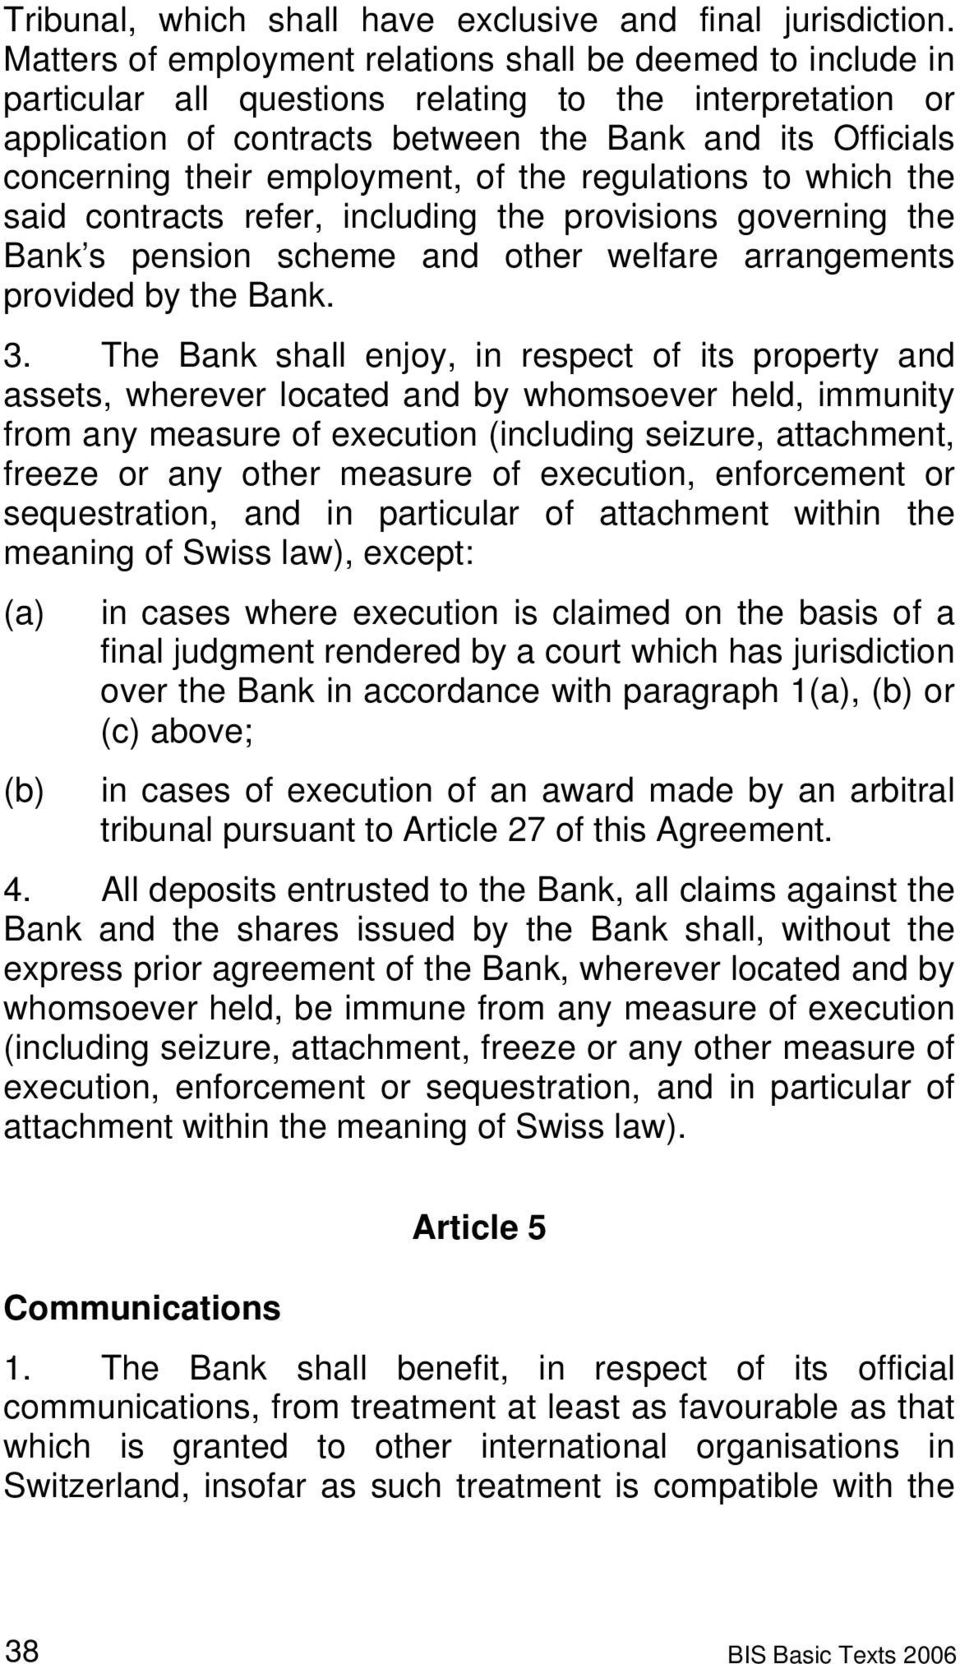 employment, of the regulations to which the said contracts refer, including the provisions governing the Bank s pension scheme and other welfare arrangements provided by the Bank. 3.